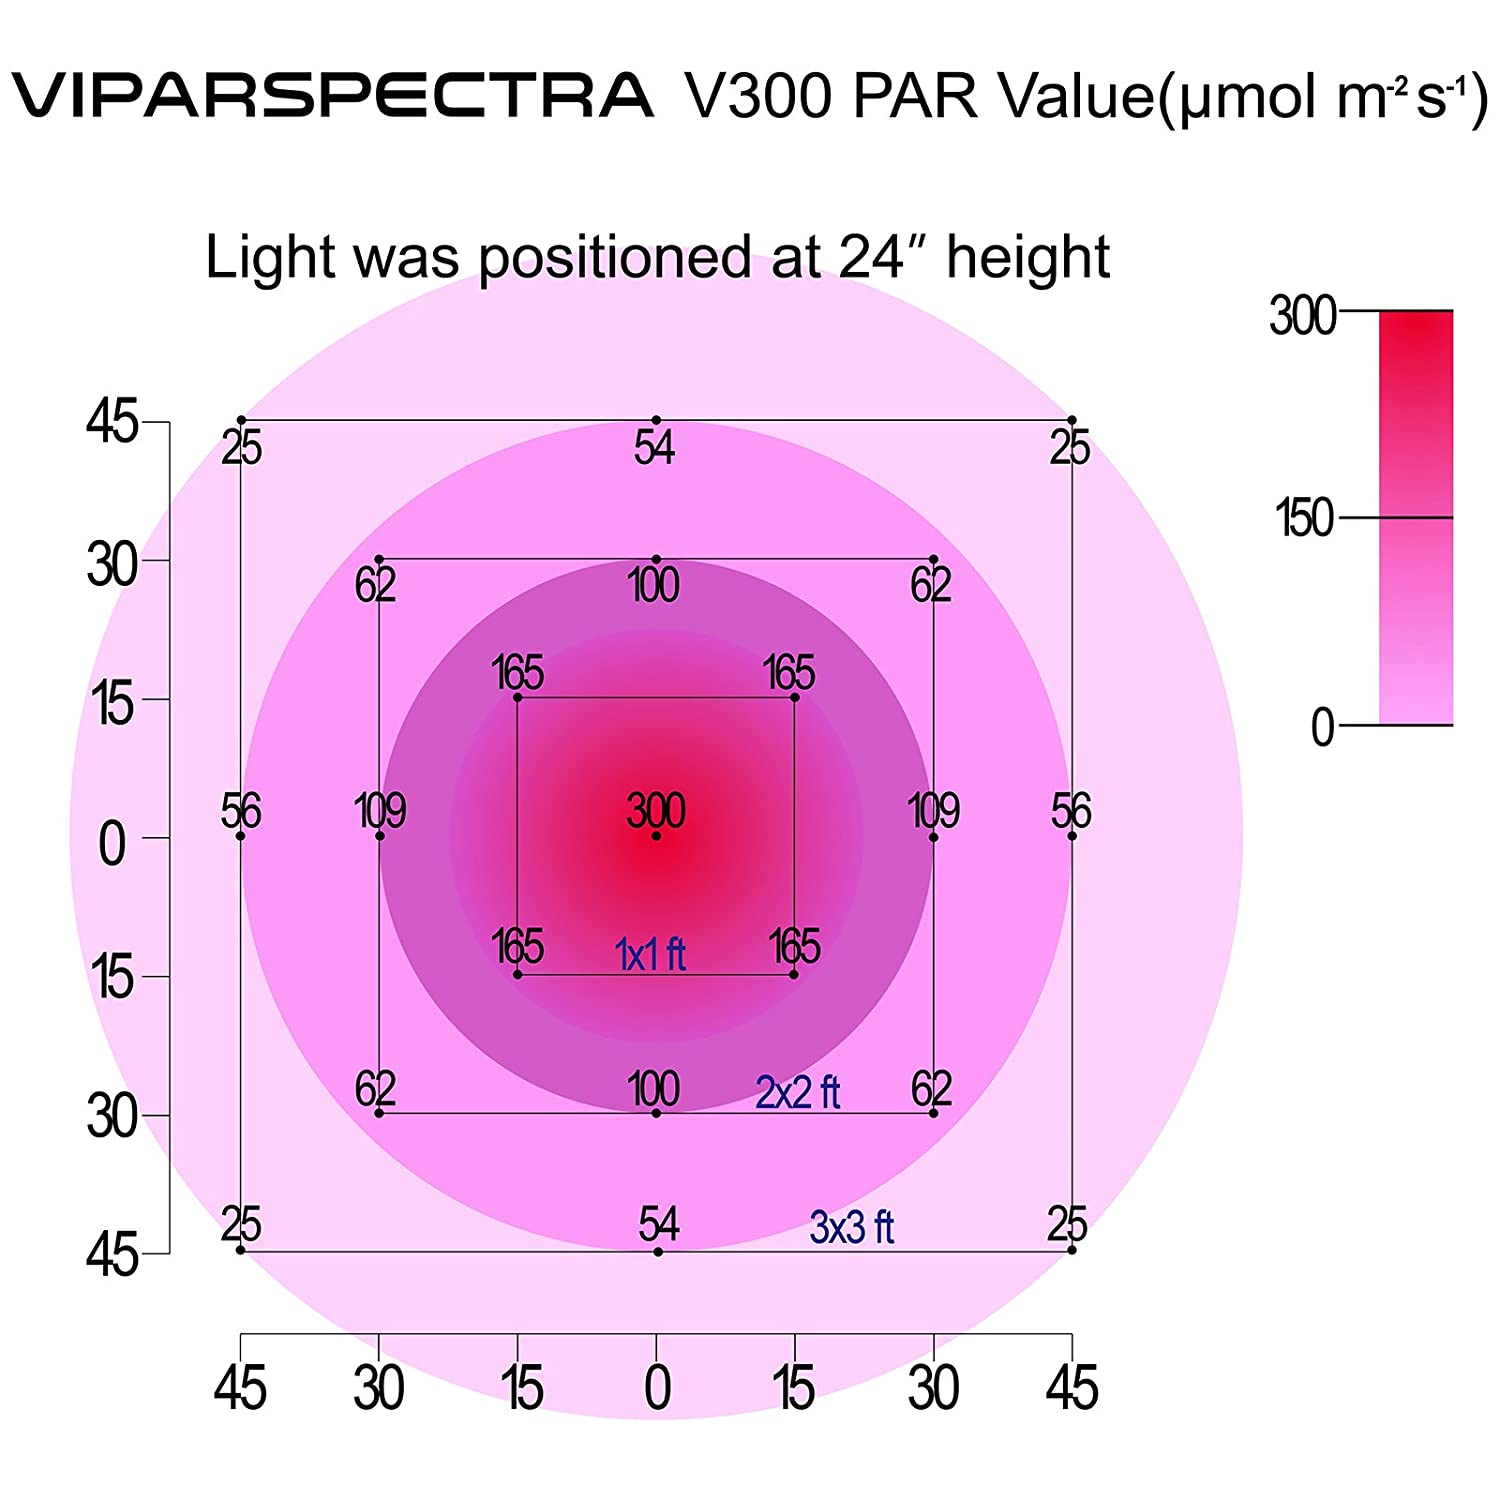 Viparspectra v300 300w led grow light - PAR values